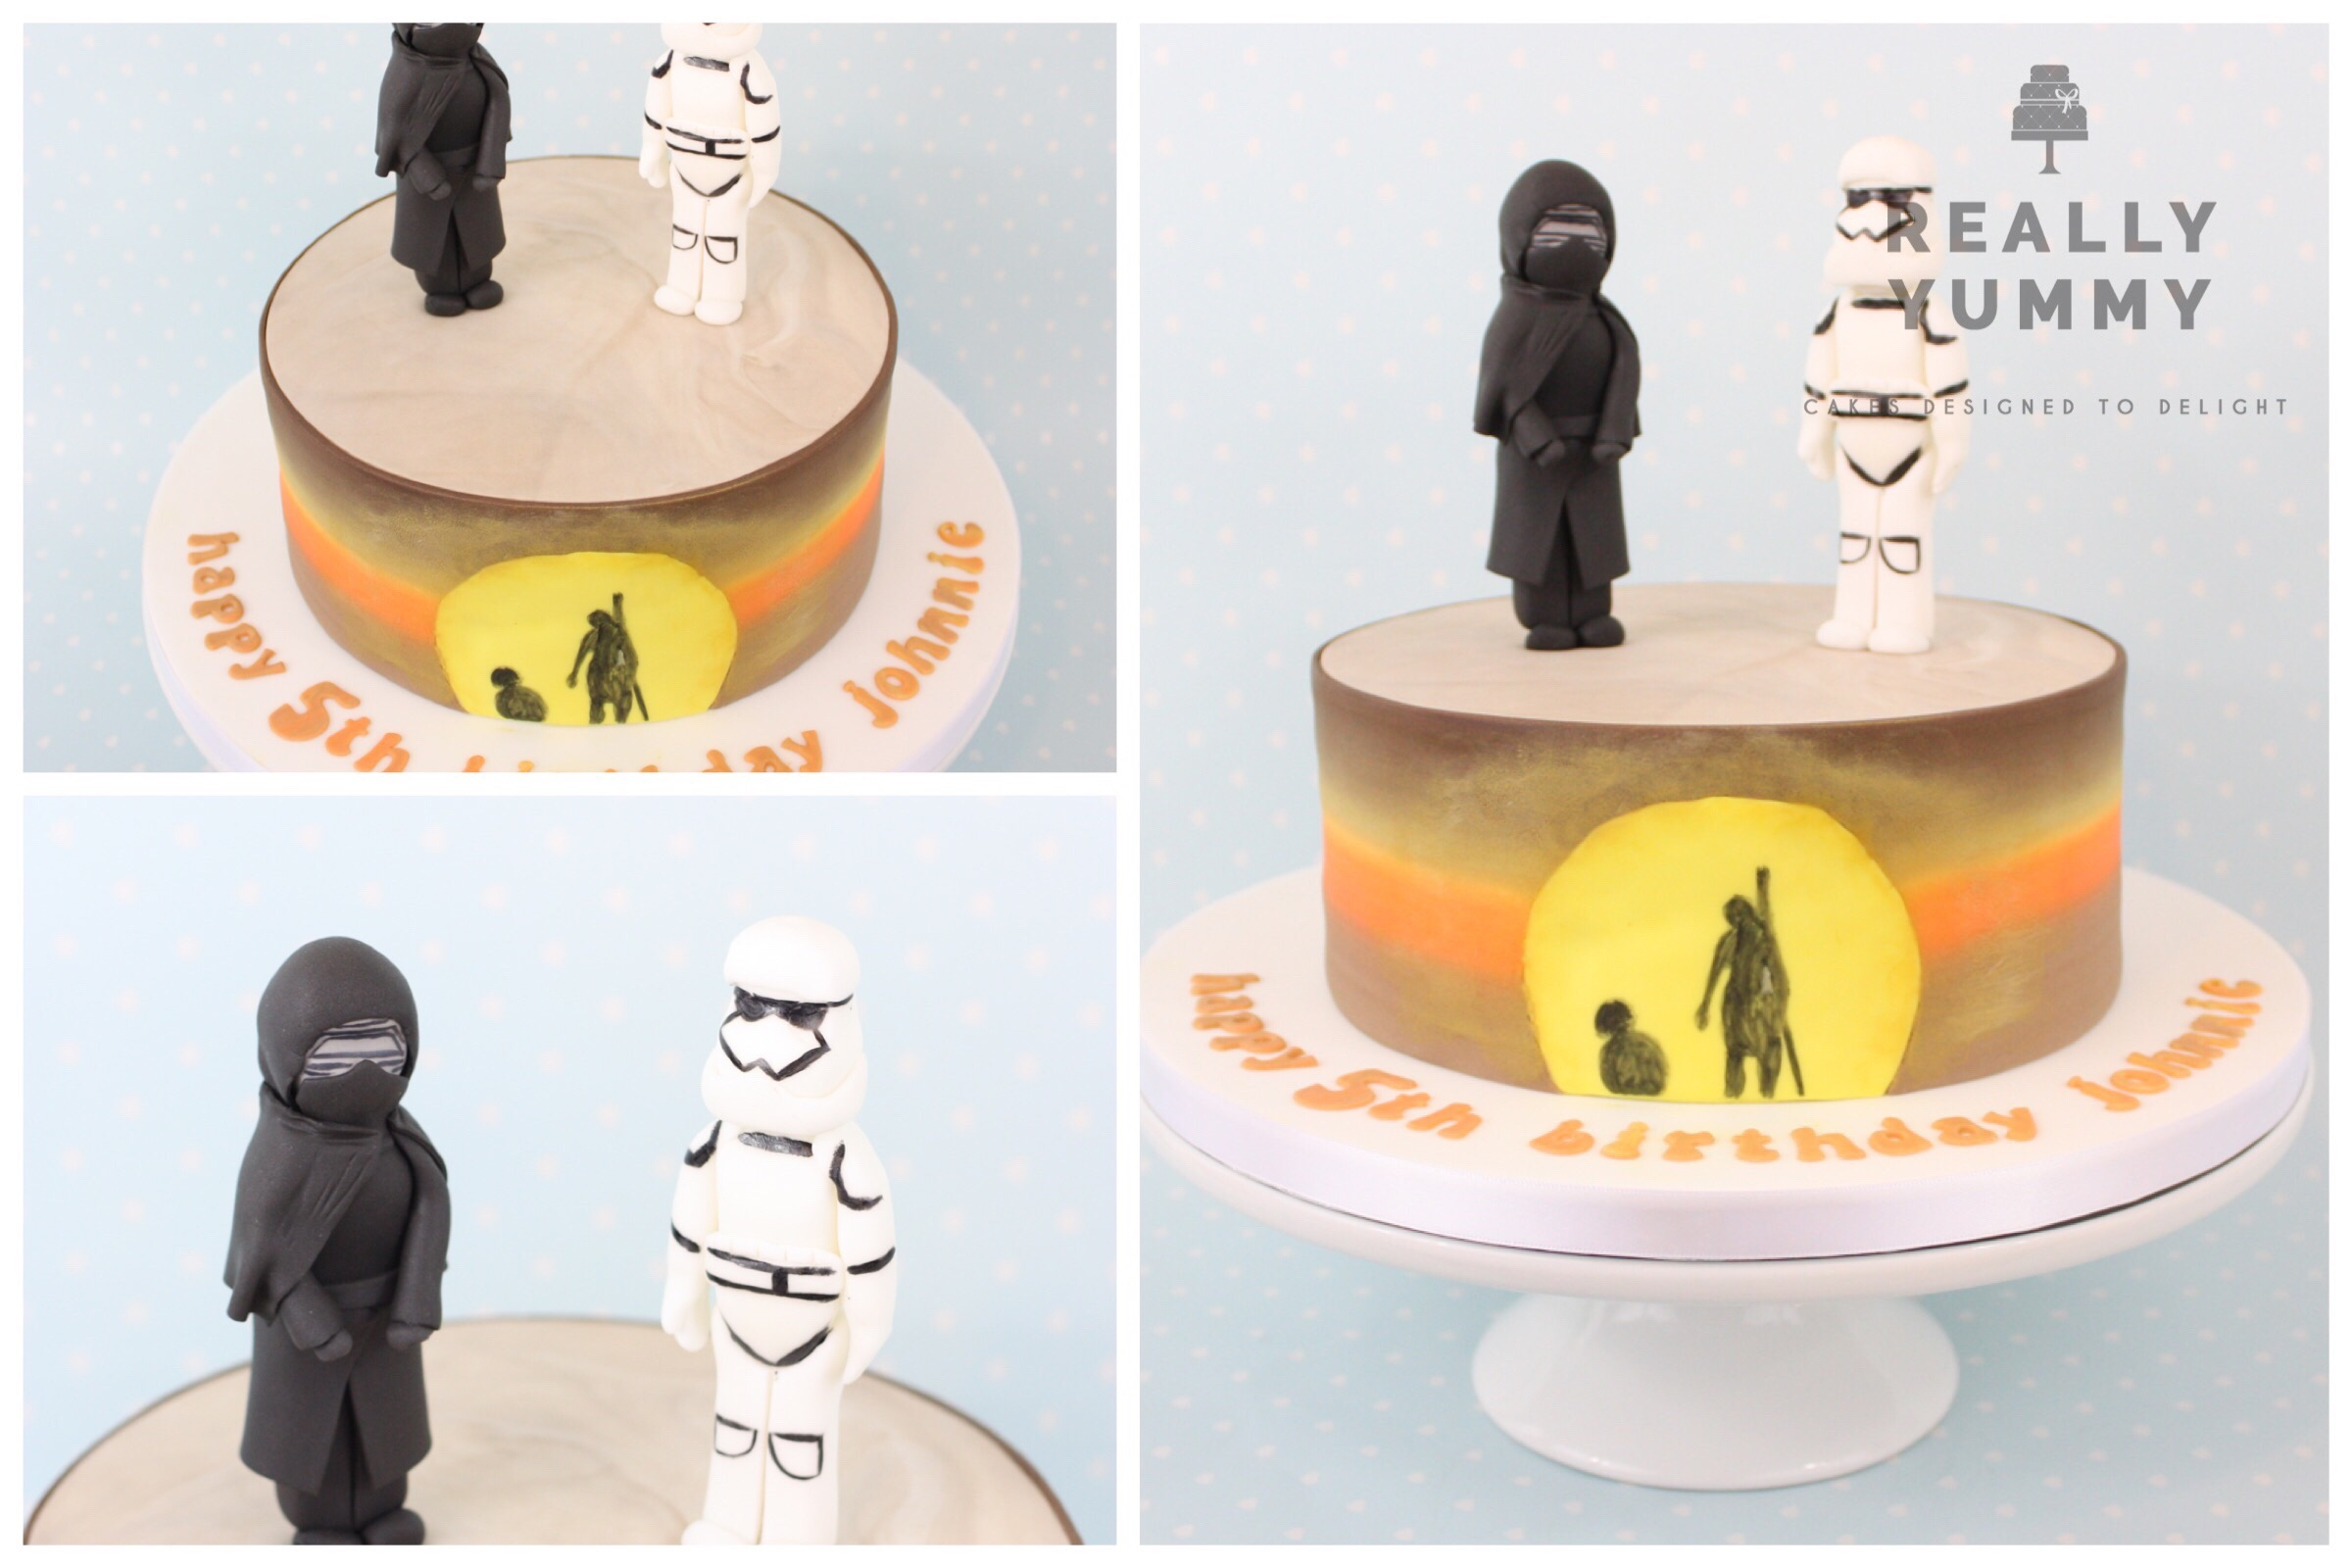 Star Wars cake, with Kylo Ren and Stormtrooper